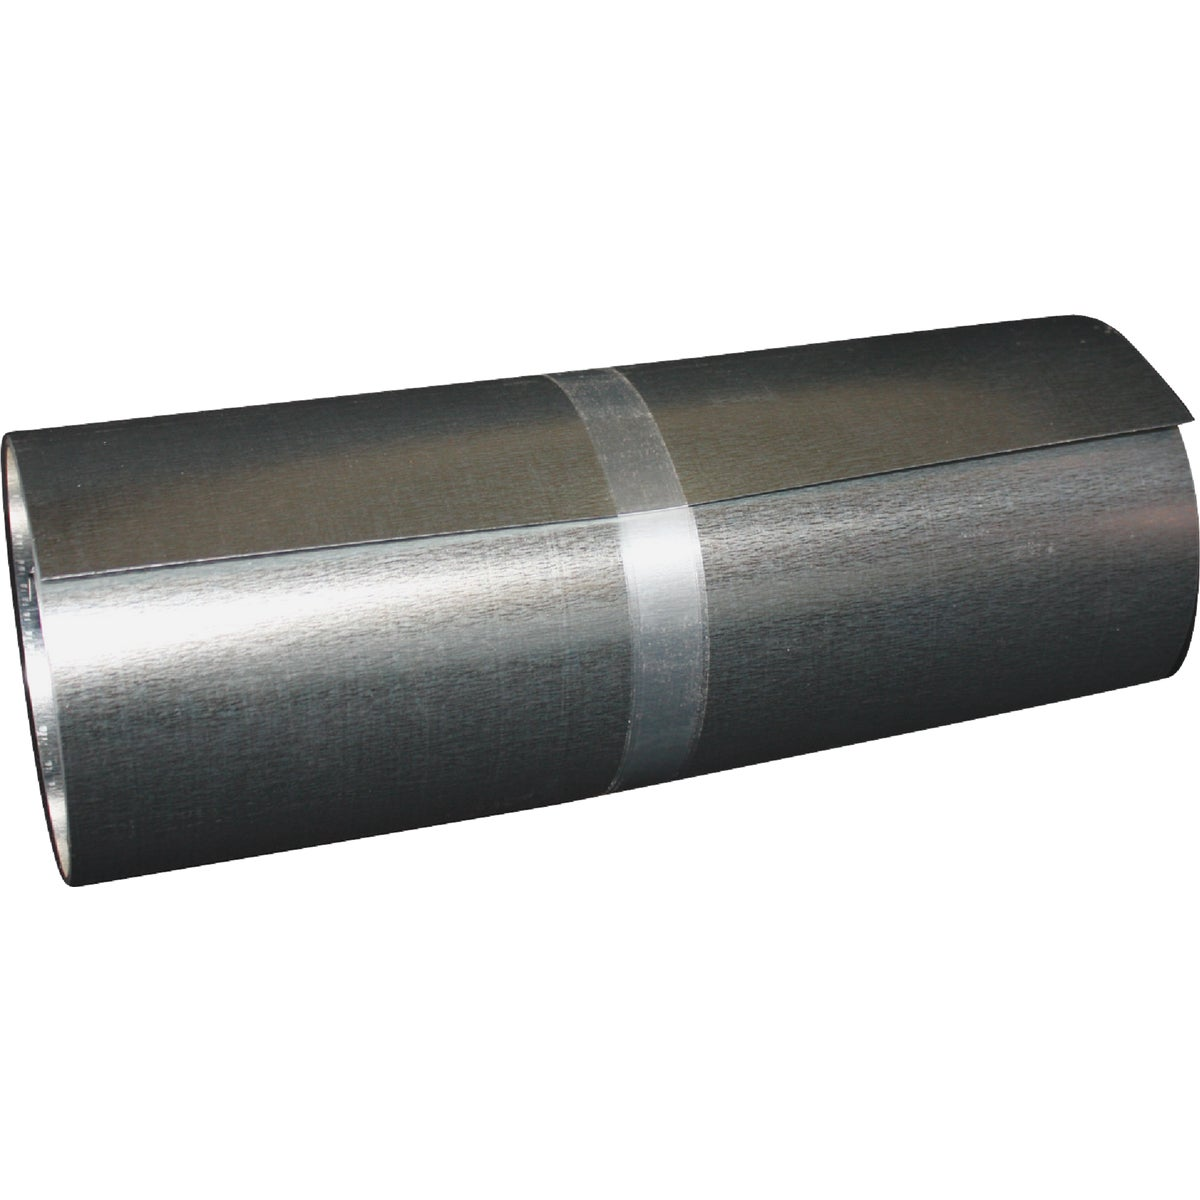 "4""X25' GALV ROLL VALLEY - 30005-GV10 by Klauer Mfg Co"